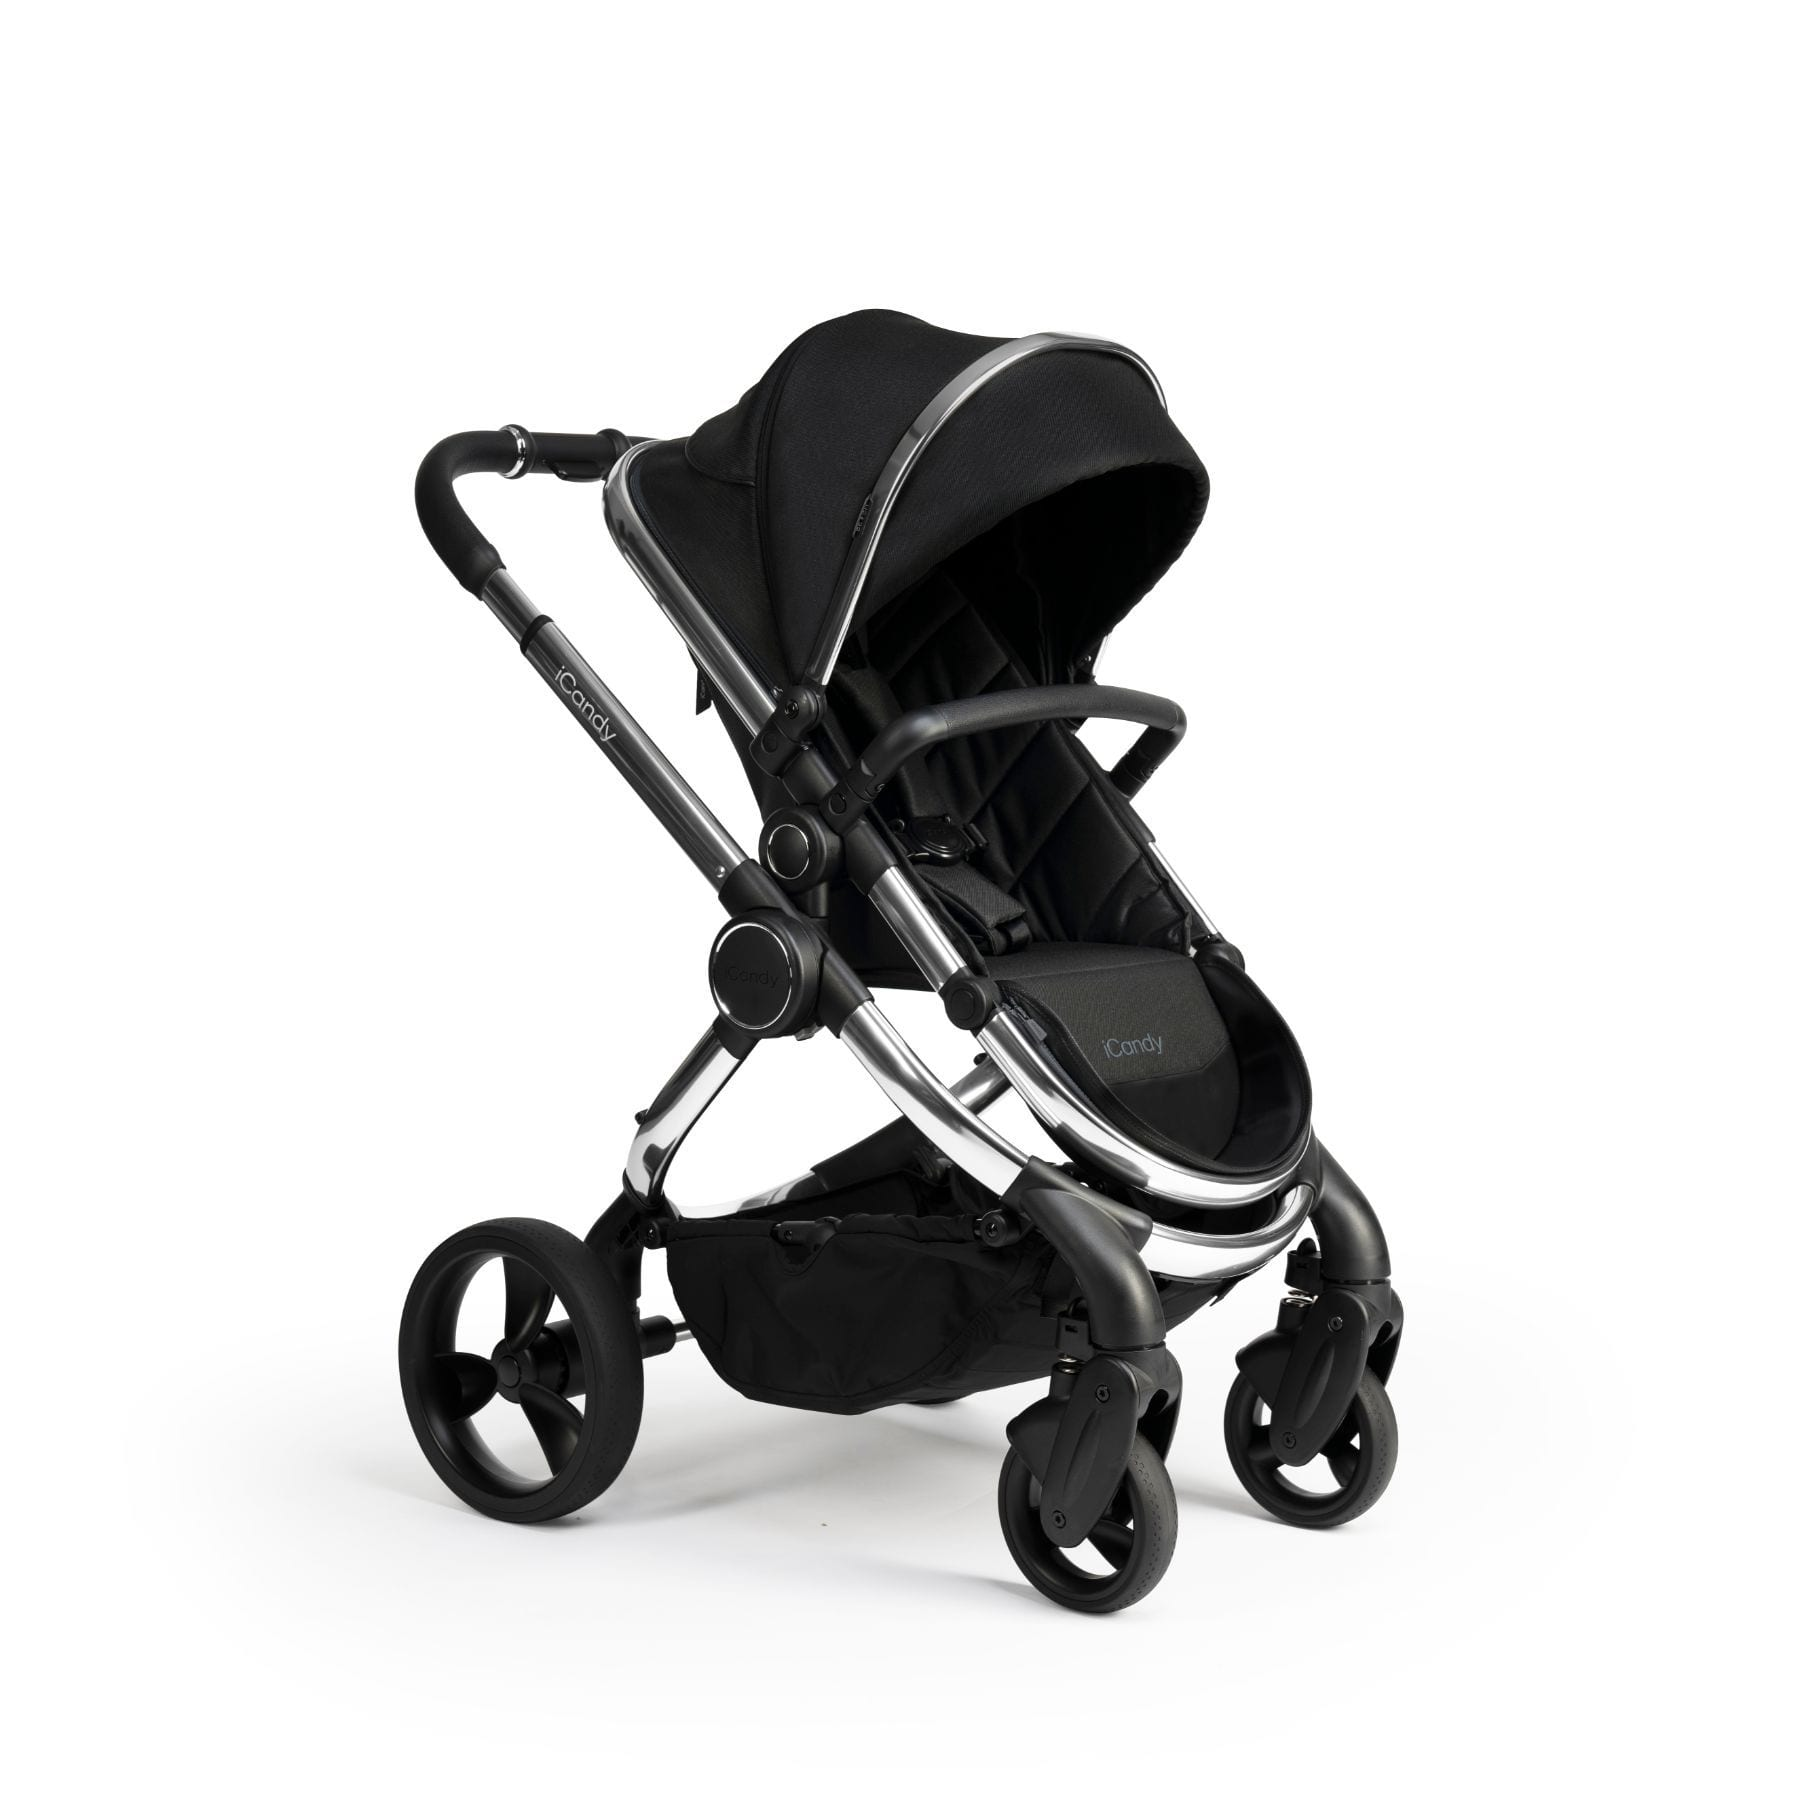 iCandy Peach Chrome Pushchair & Carrycot - Black Twill